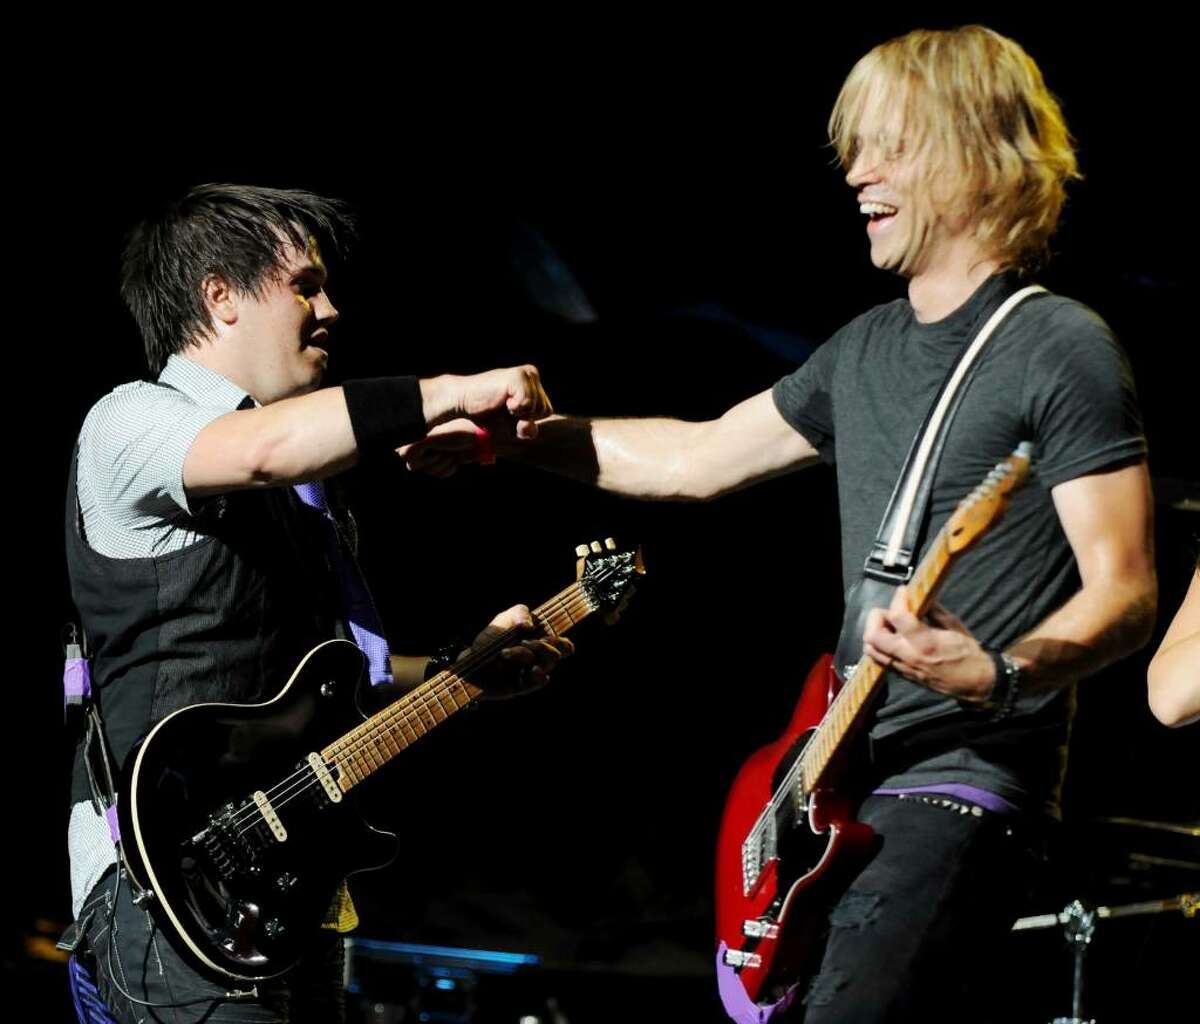 Lead guitarist Andrew Foster, left, and guitarist Mark Rose, right, of the local band Ten Year Vamp give eachother the fist pump as they perform on stage at SPAC, on Sunday, July 11, 2010, Saratoga Springs, NY. The group got a big break at the Saratoga Performing Arts Center, warming up for headliner Jon Bon Jovi. (Luanne M. Ferris / Times Union)